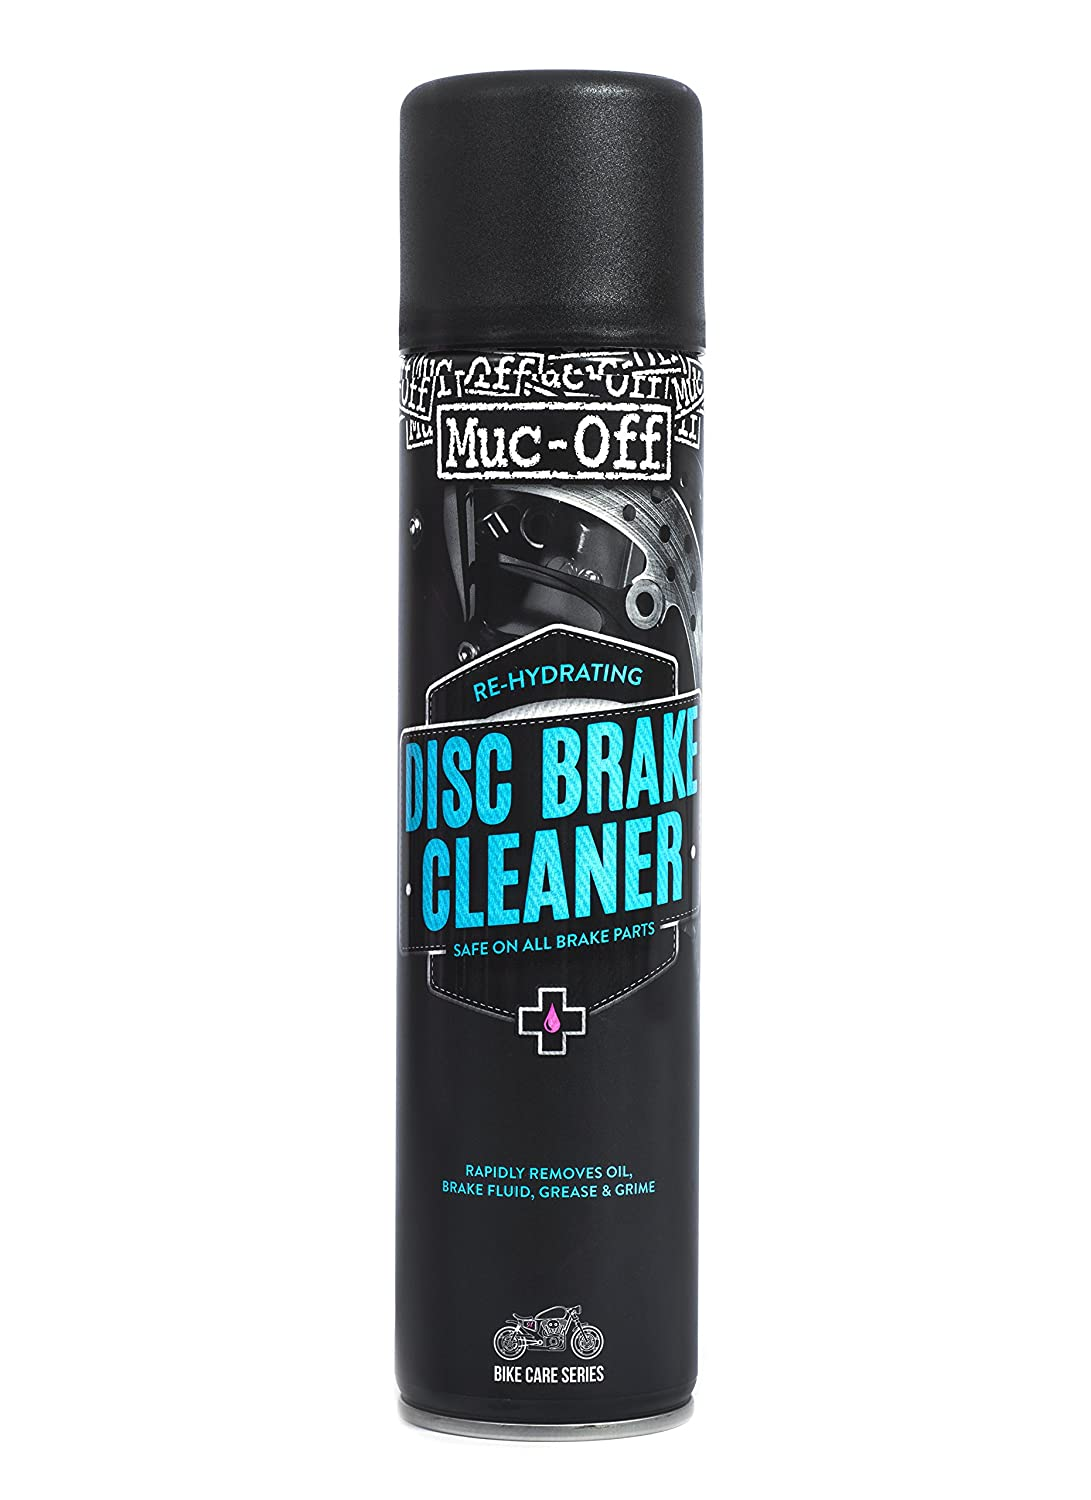 Muc-Off Motorcycle Brake Cleaner 400ml Muc-Off Ltd (UK) 613